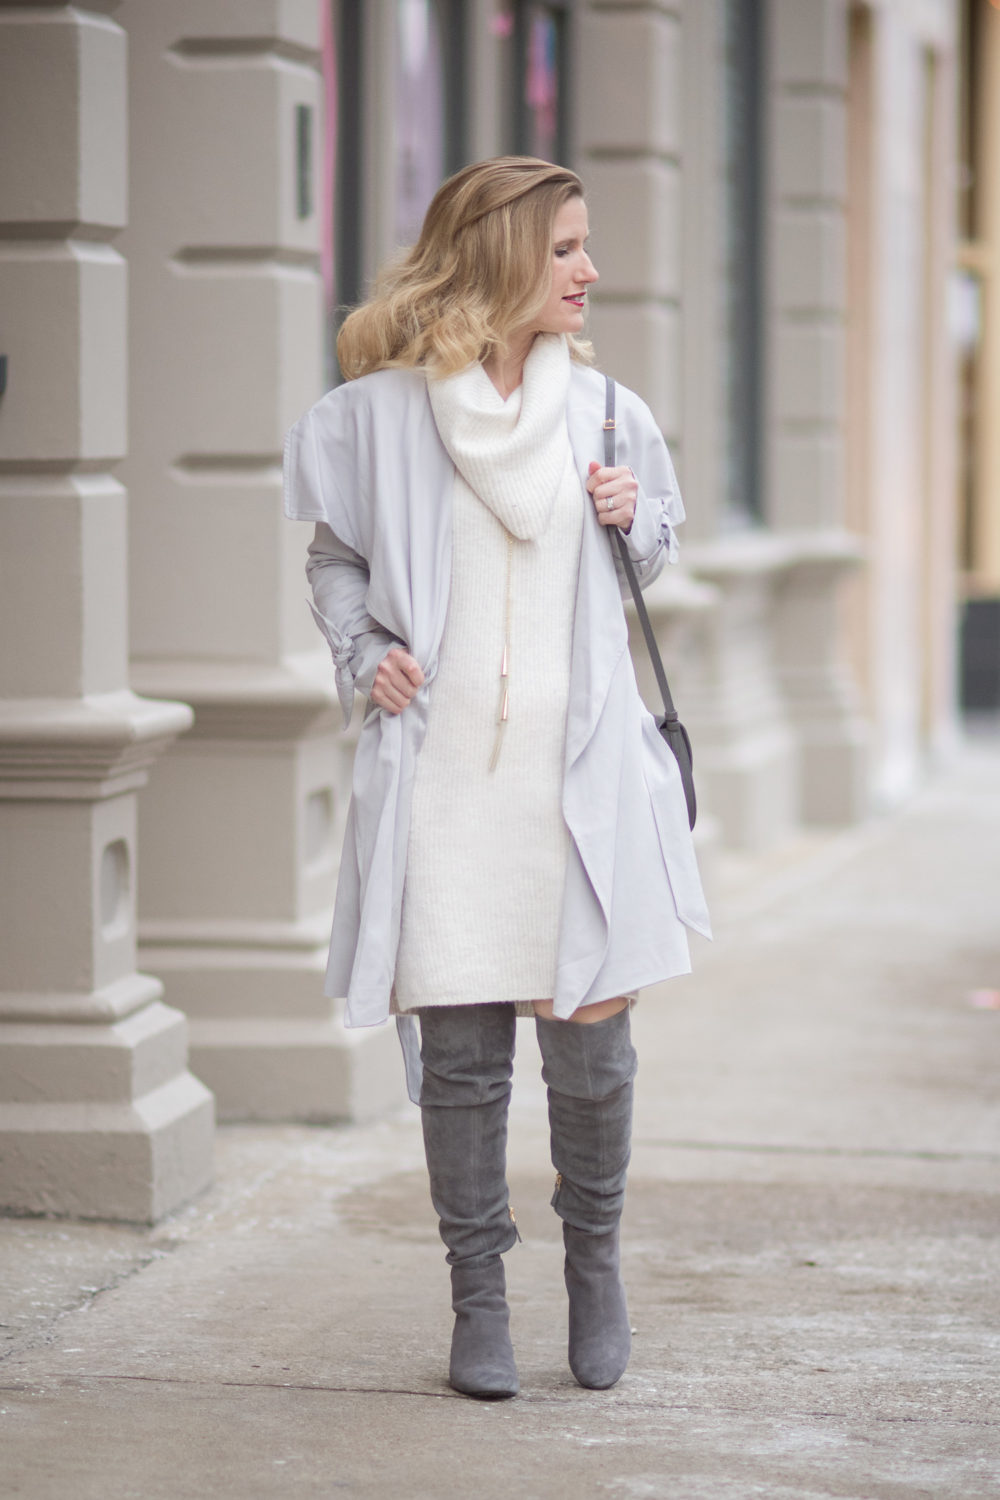 Petite Fashion and Style Blog | Fashion For Petite Women | Club Monaco Ellyn Trench | Miss Selfridge Cowl Neck Jumper | Tory Burch Laila OTK Boots | Lightweight spring jackets